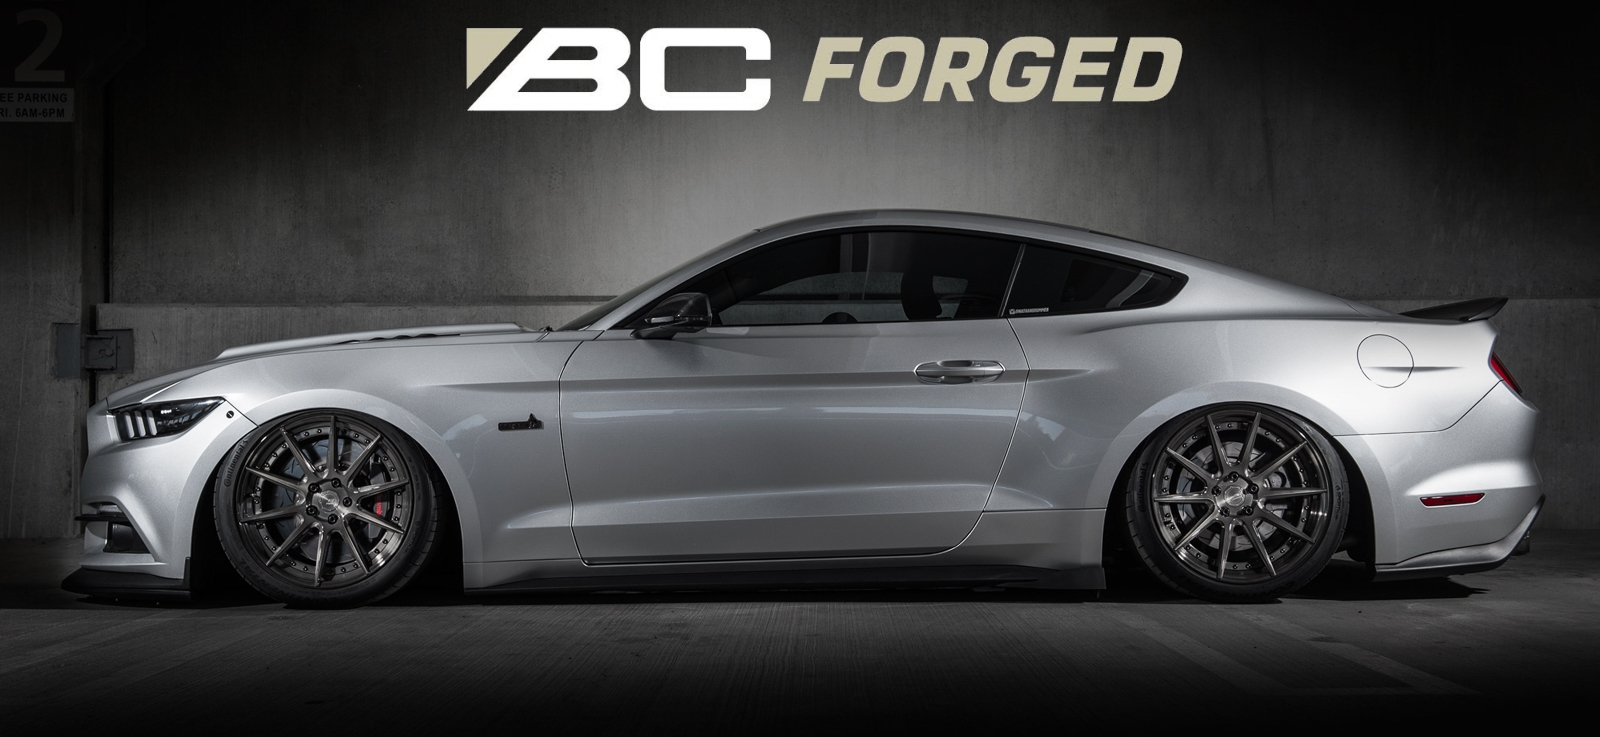 bc-forged_product_banner.jpg